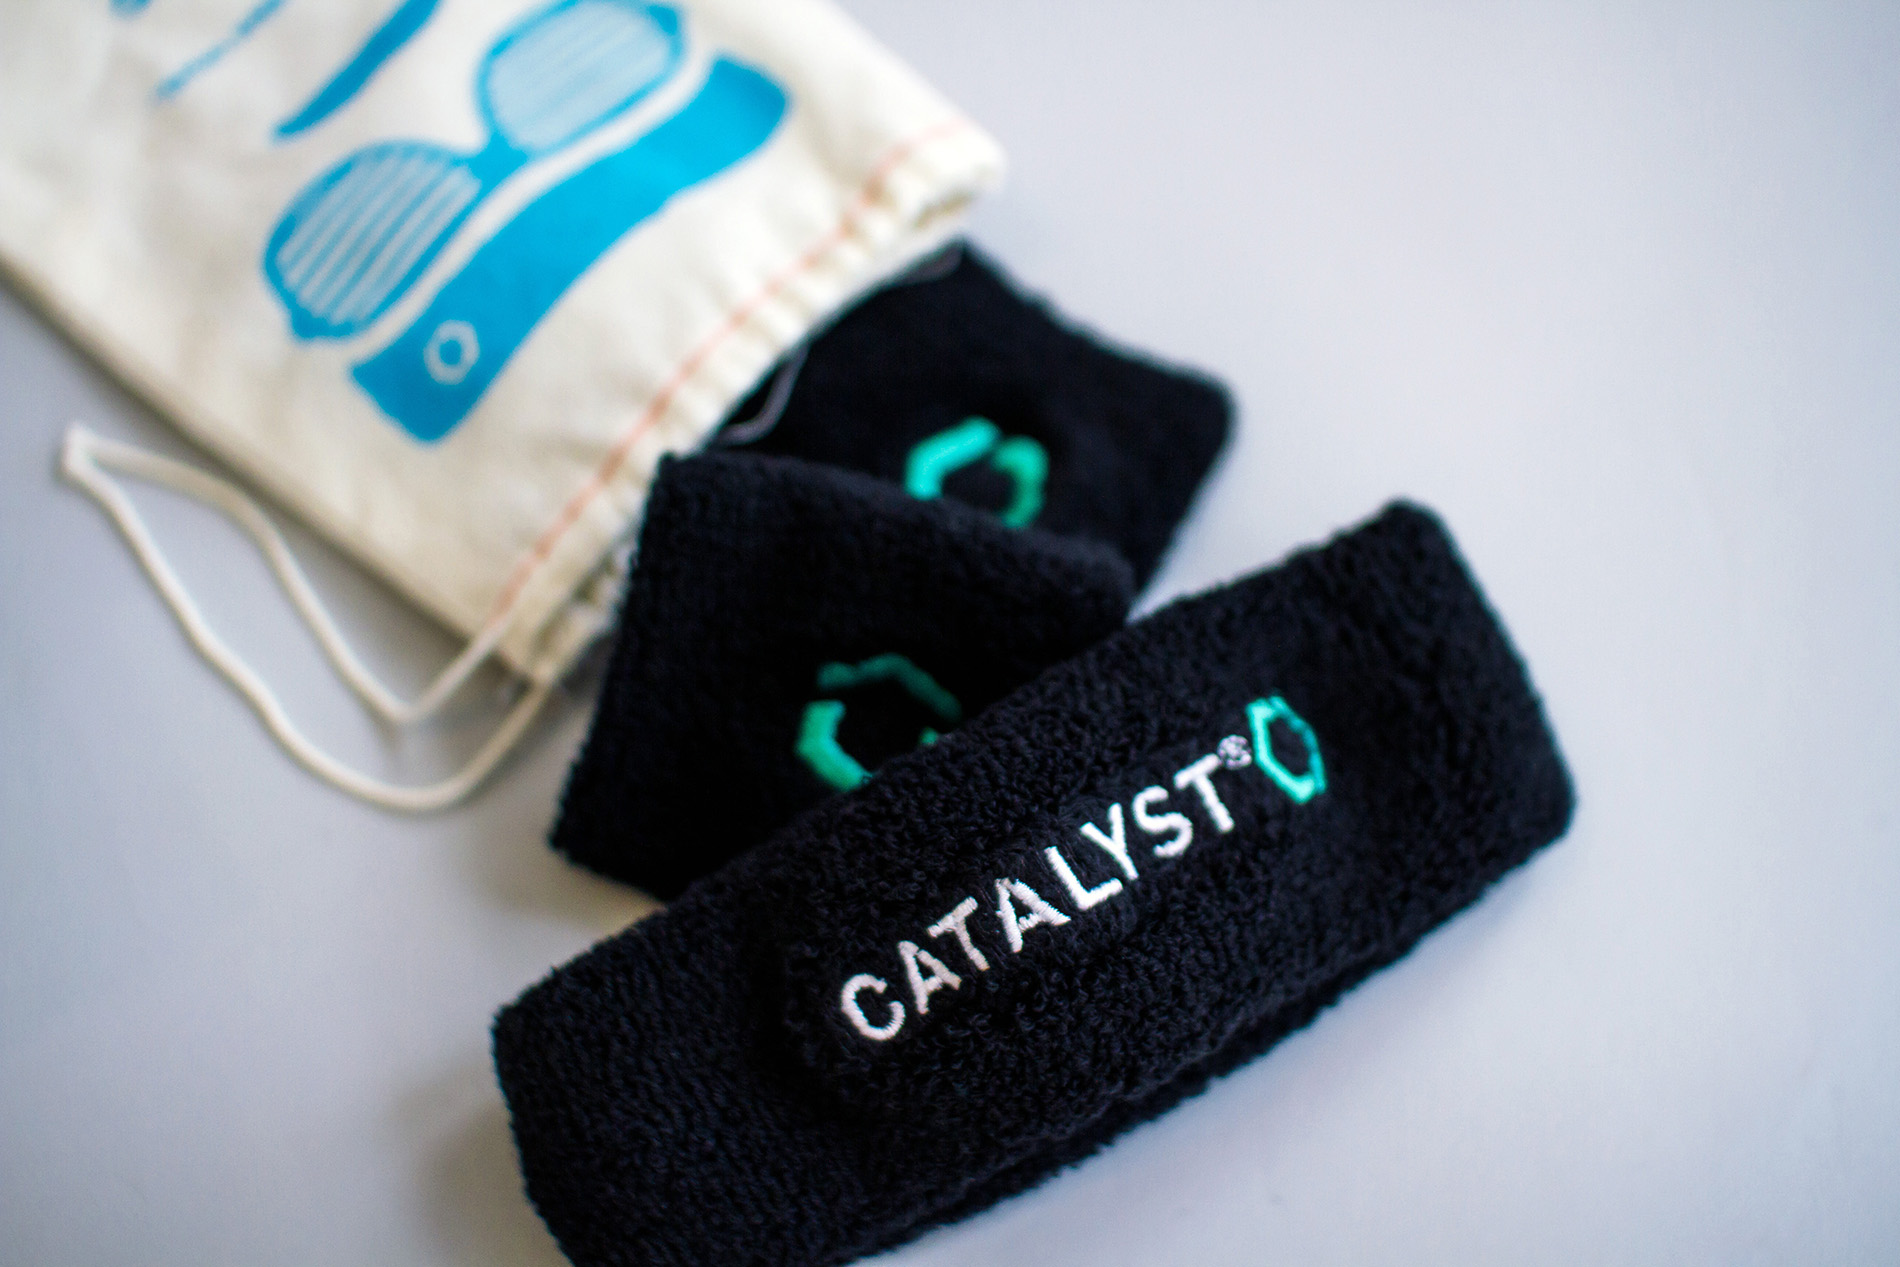 Custom headbands and wristband sweatbands with the Catalyst logo for the conference event theme promotion.